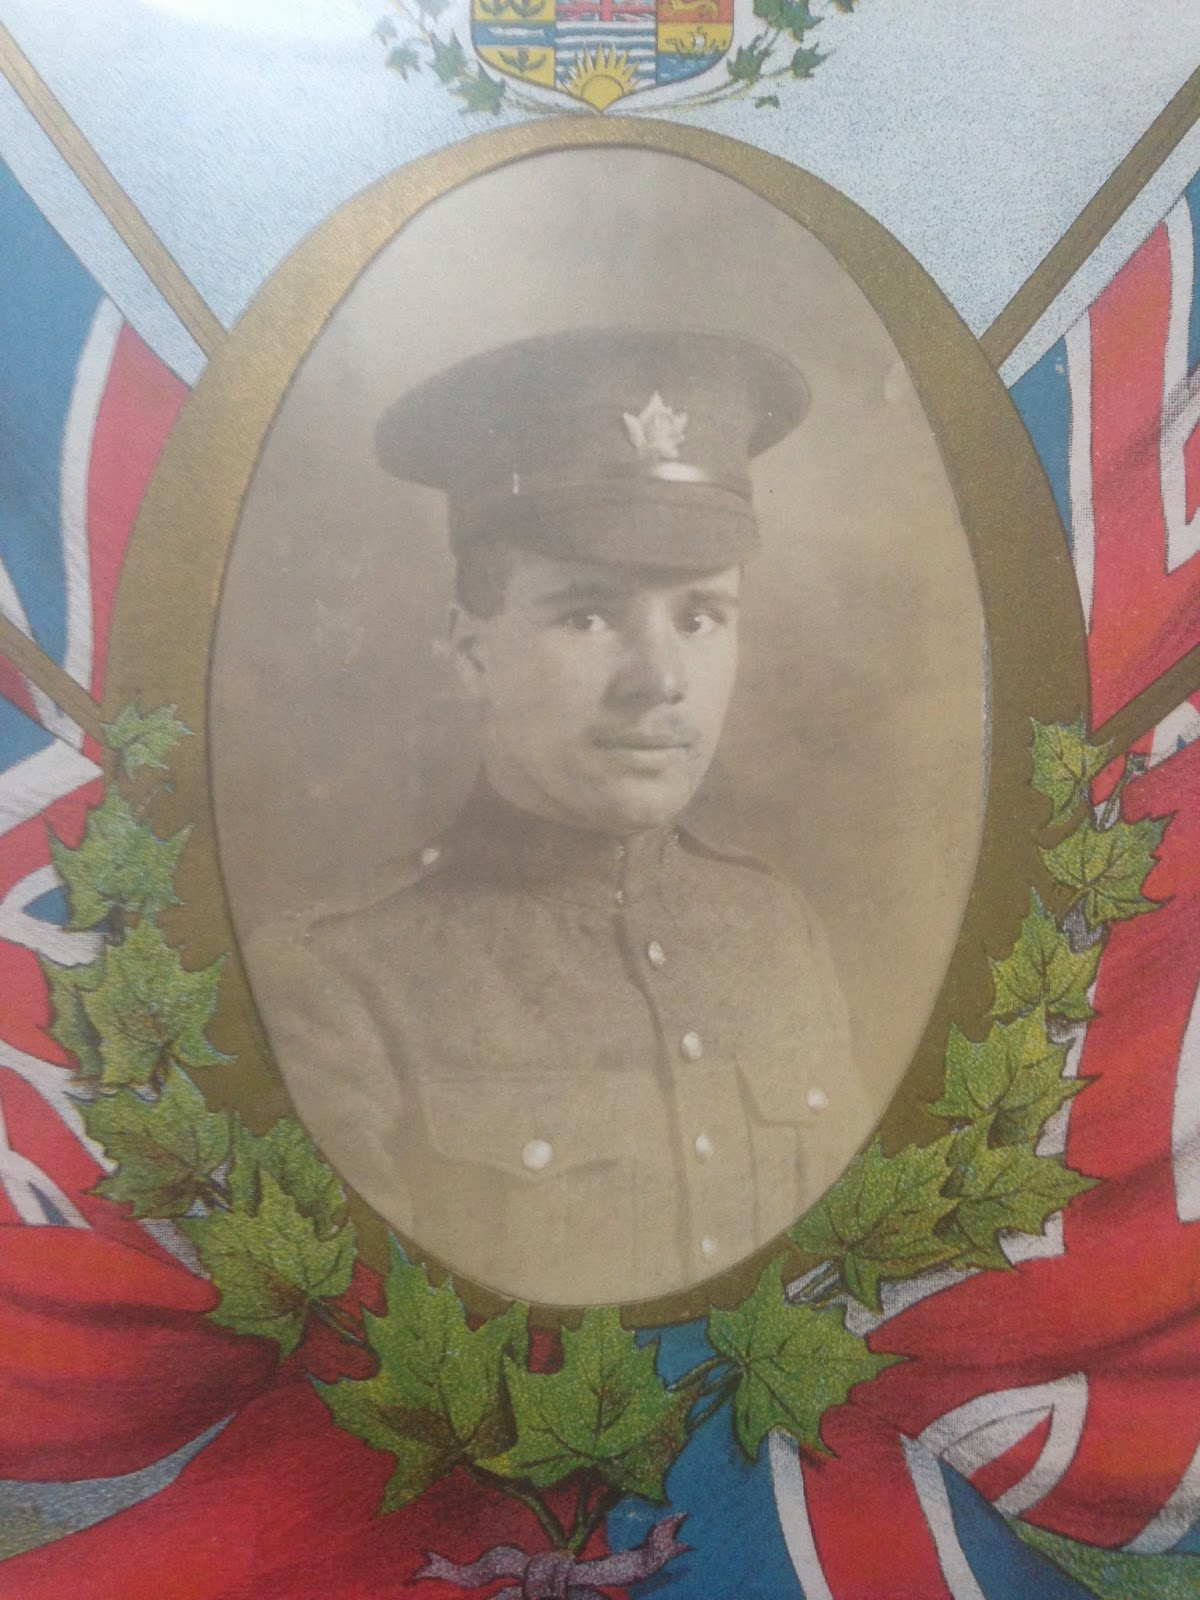 Olive Tree Genealogy Blog: Remembering WW1 Soldier W. J. P. Bullock